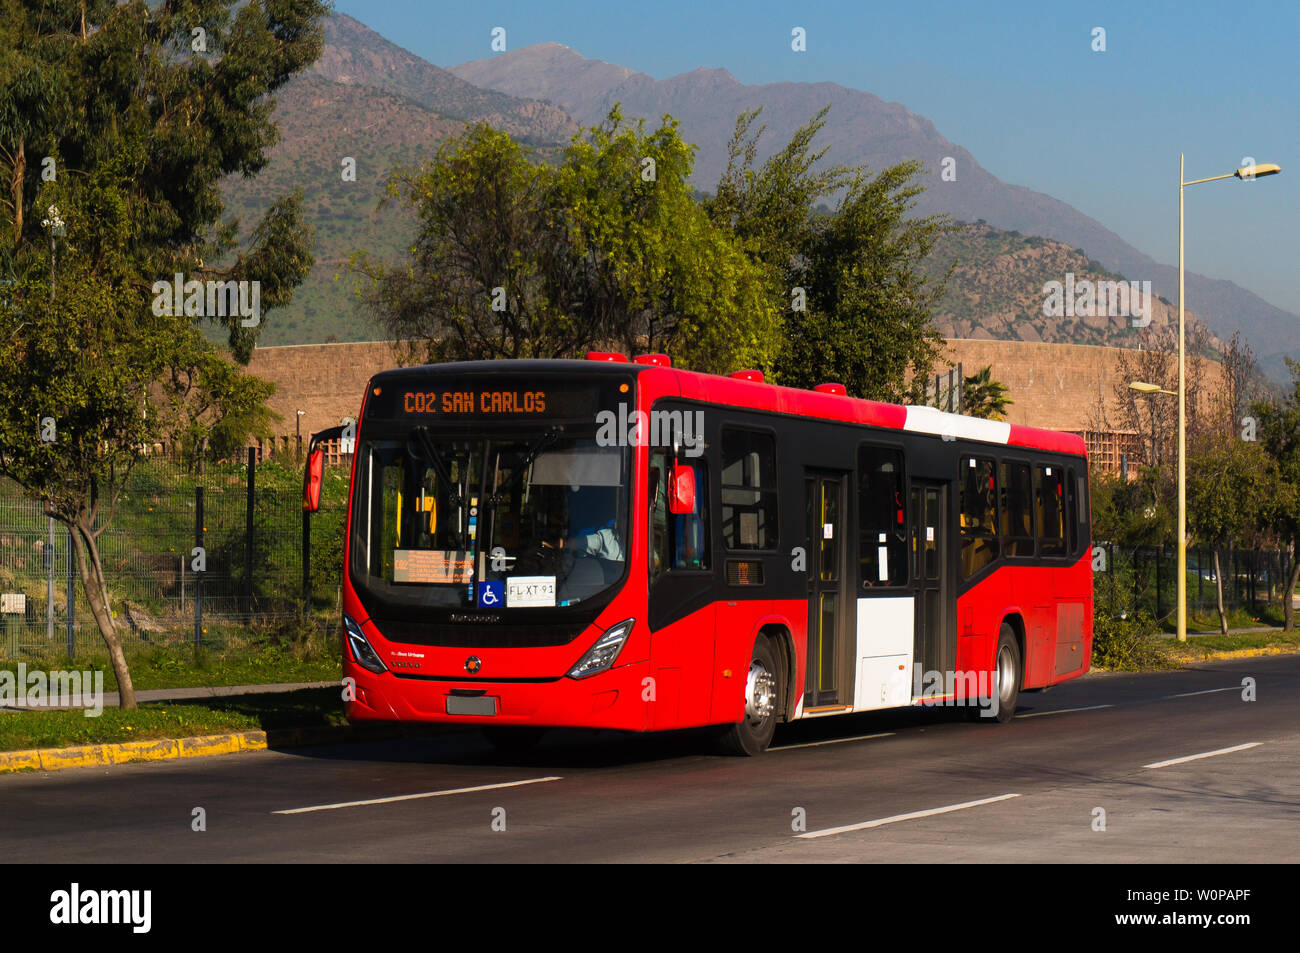 SANTIAGO, CHILE - JULY 2017: A Transantiago bus during a sunset in Santiago - Stock Image